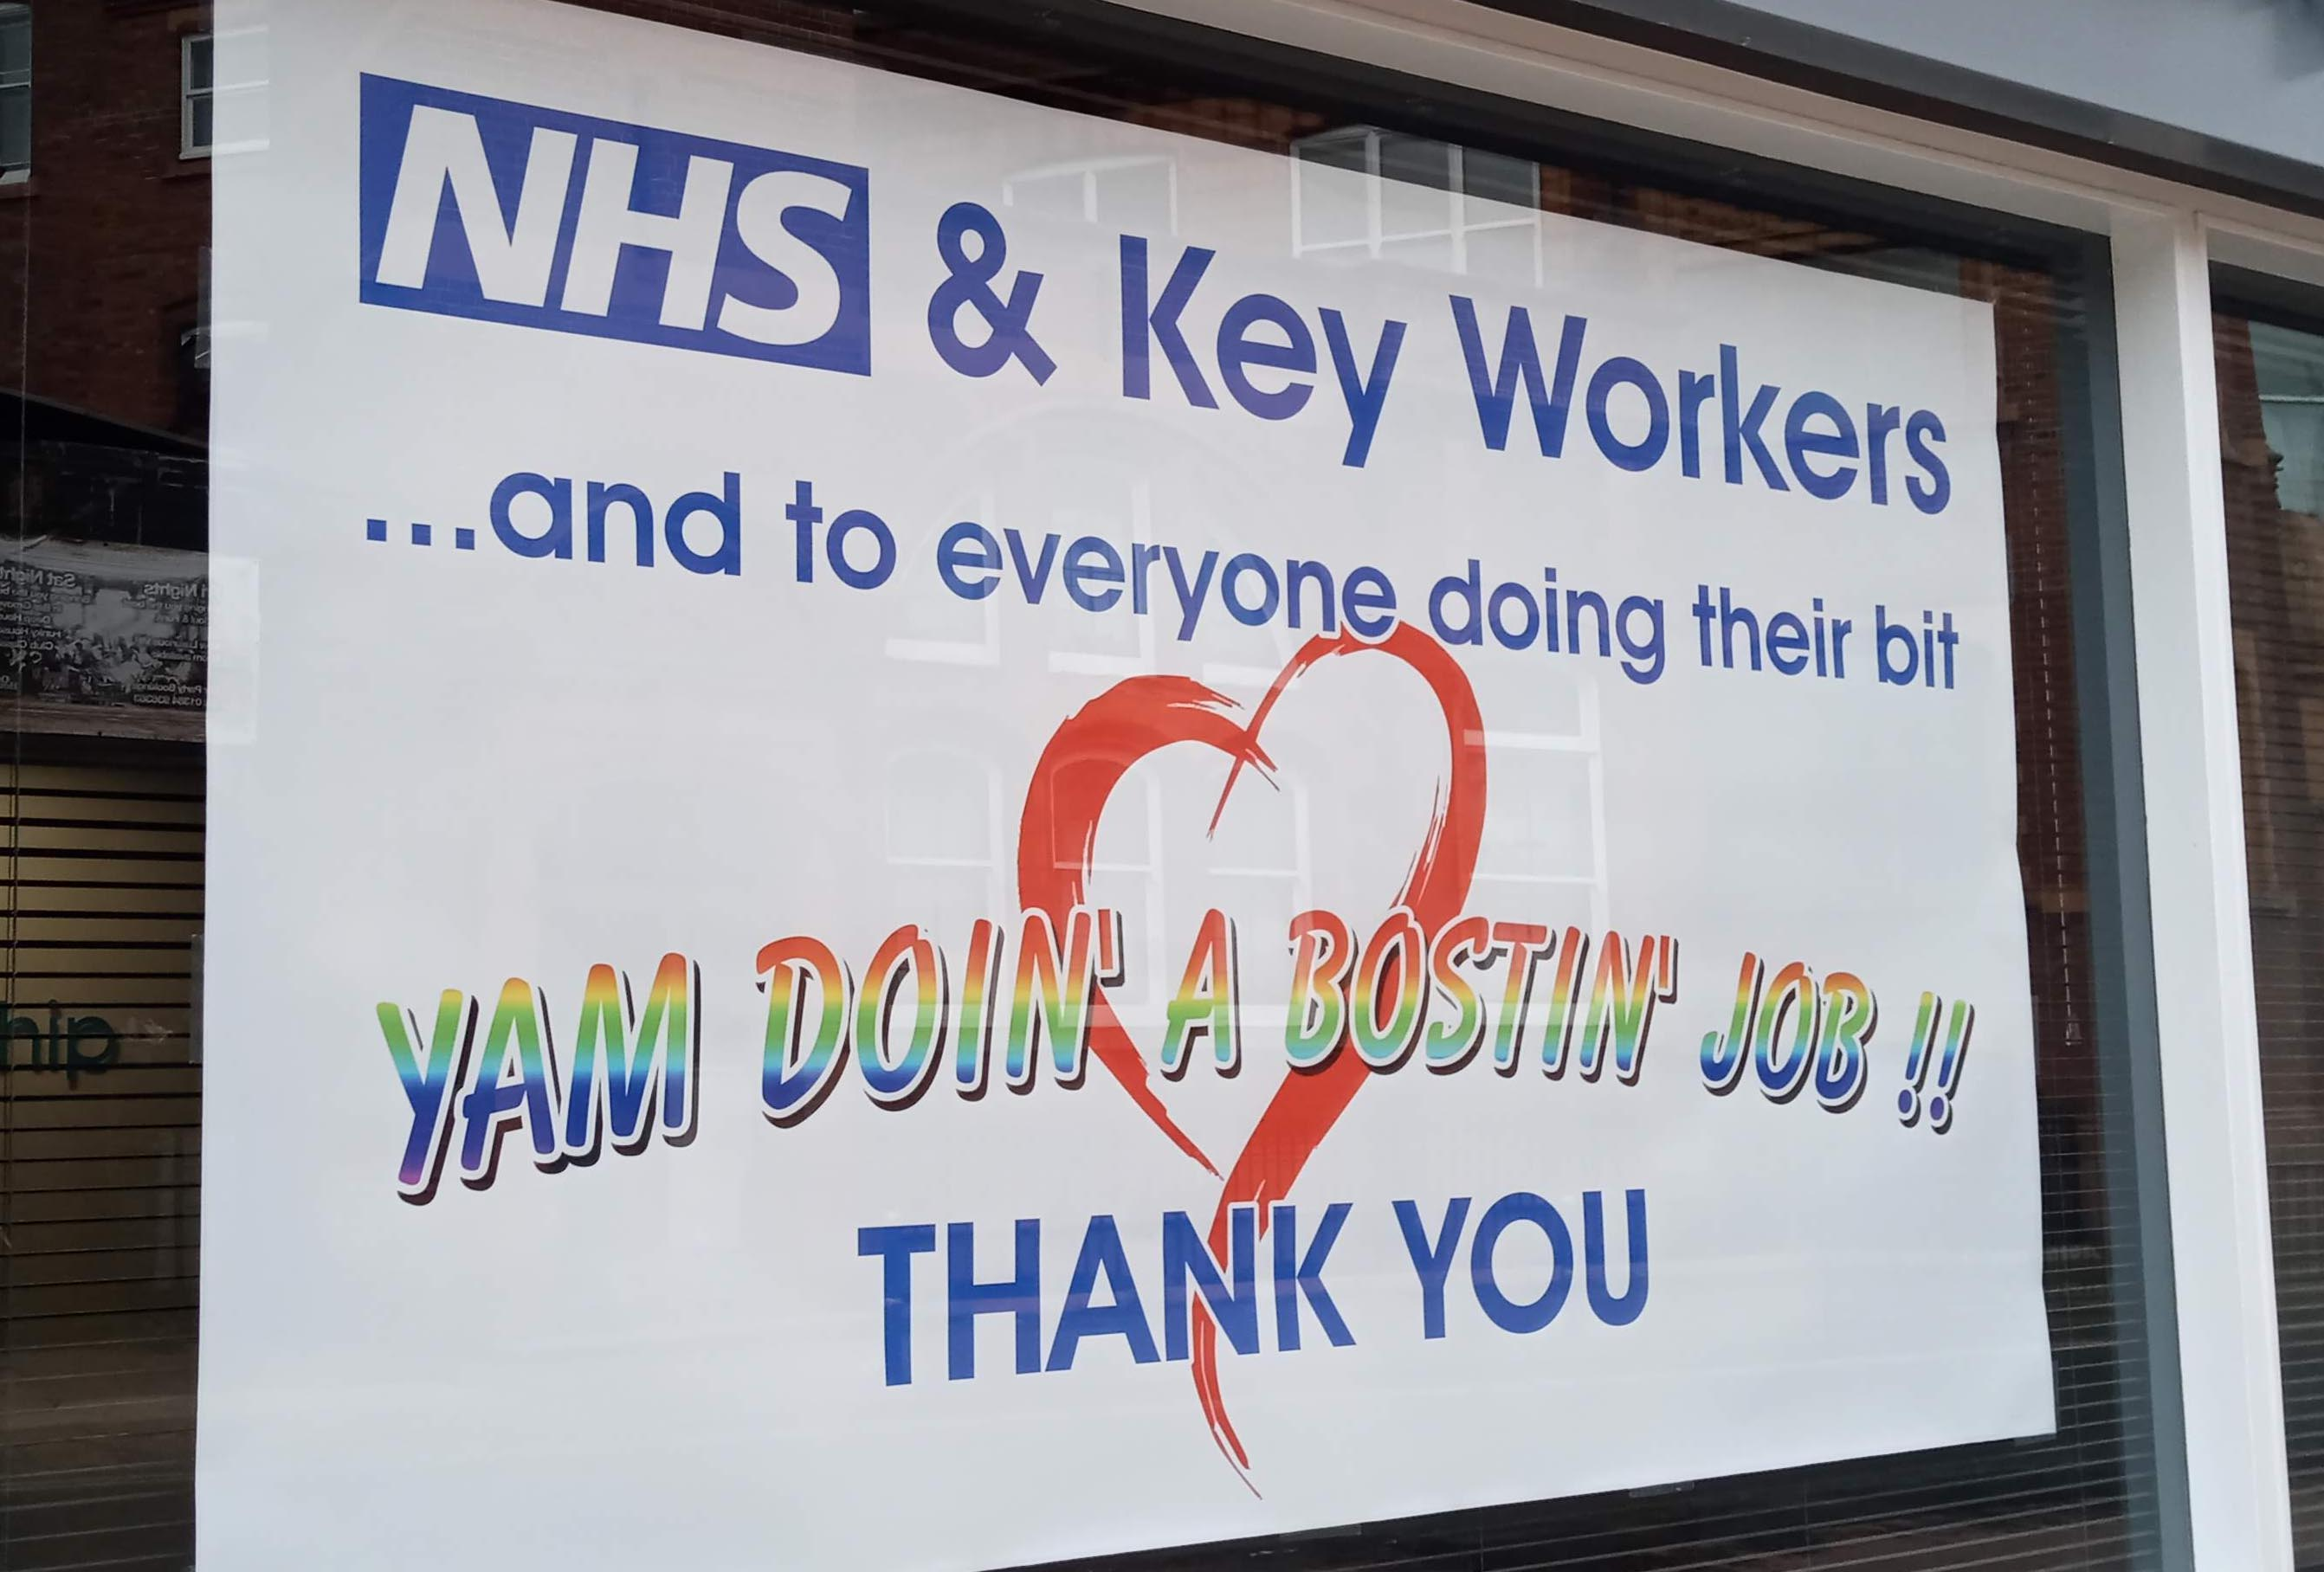 A banner thanking NHS and other key workers during the COVID-19 pandemic